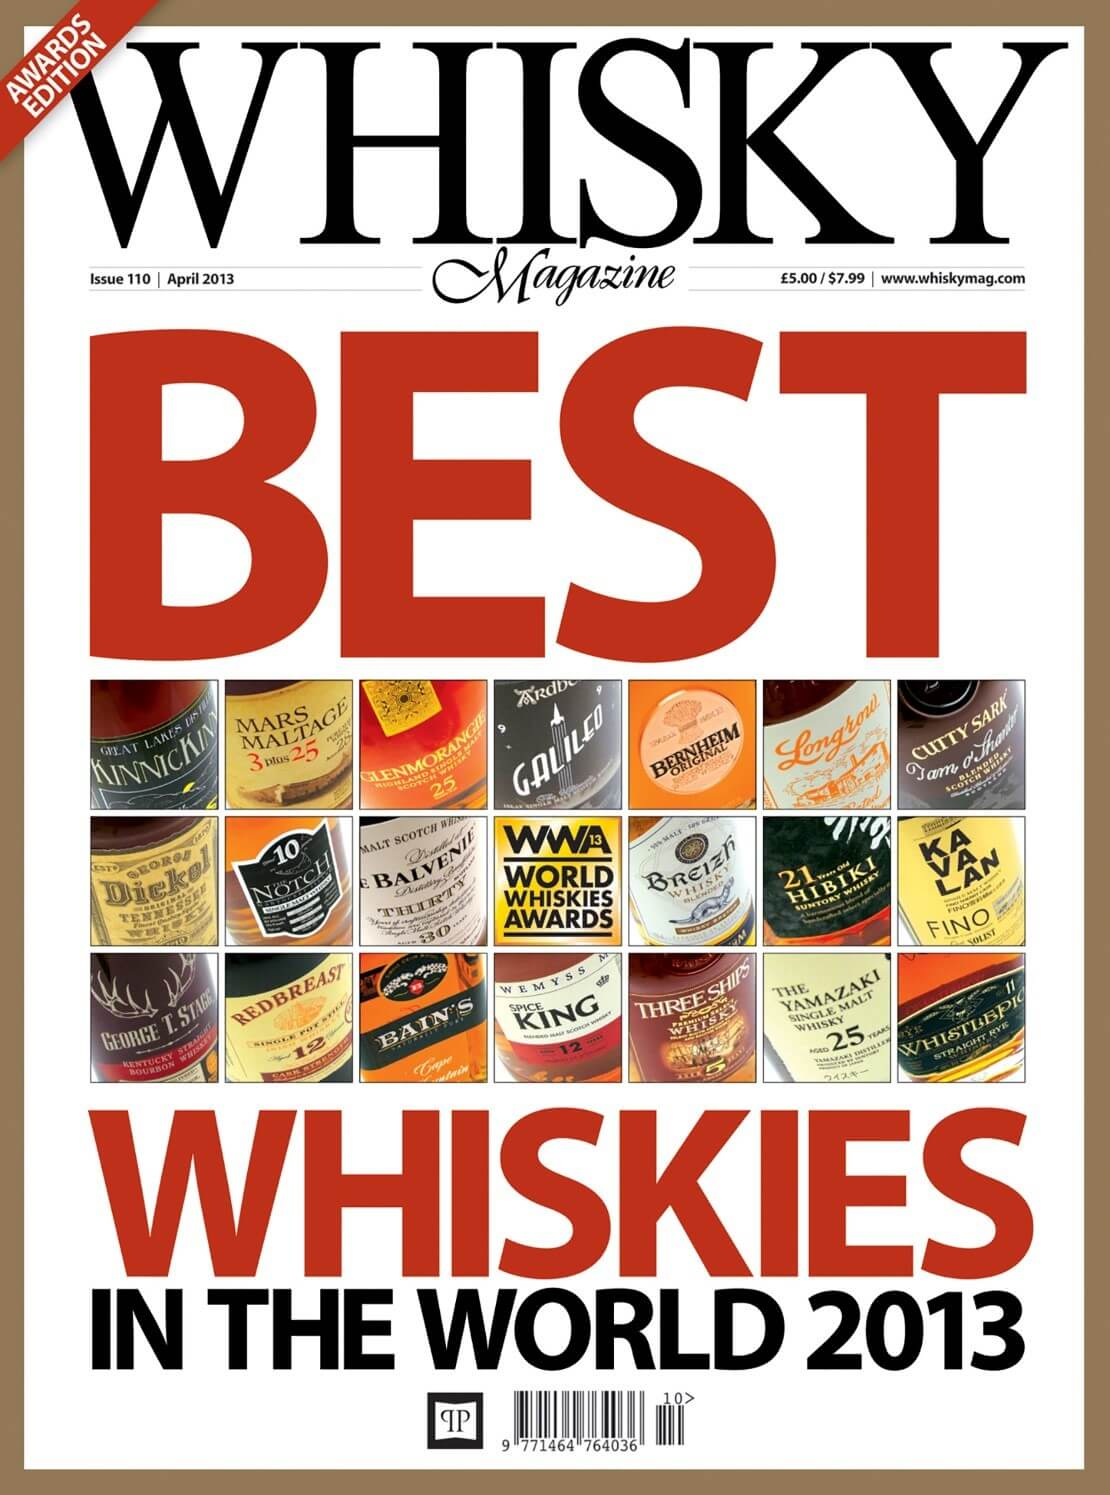 World Whiskies Awards winners Tomintoul Boxes Blend Speyside rebels